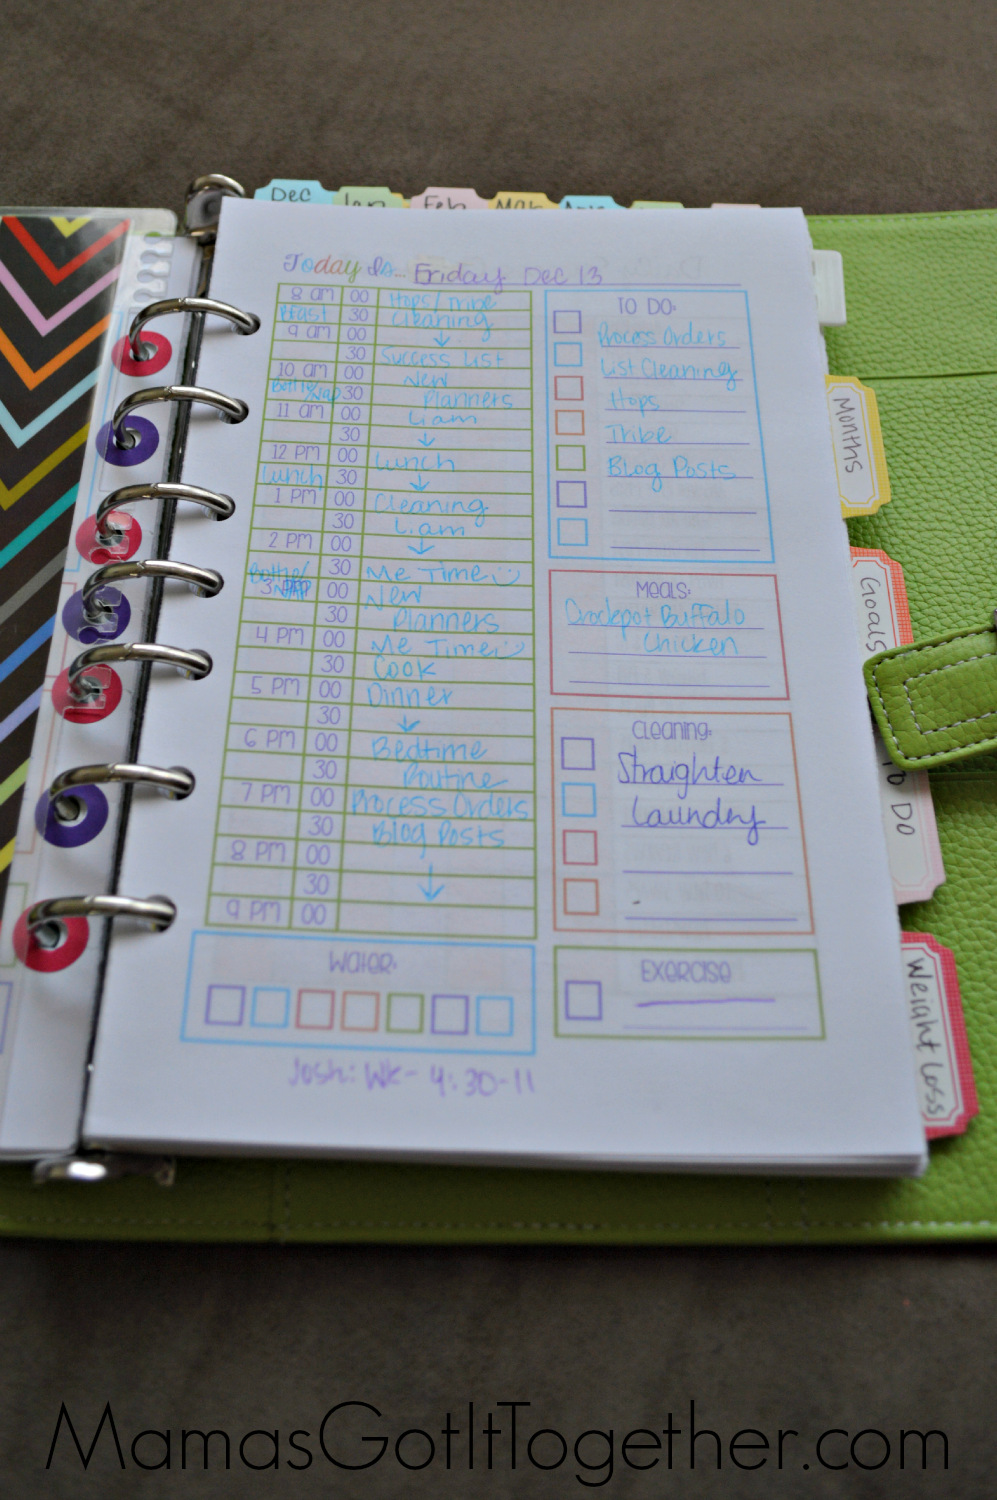 My Calendar Planner : My personal planner organization tour mama s got it